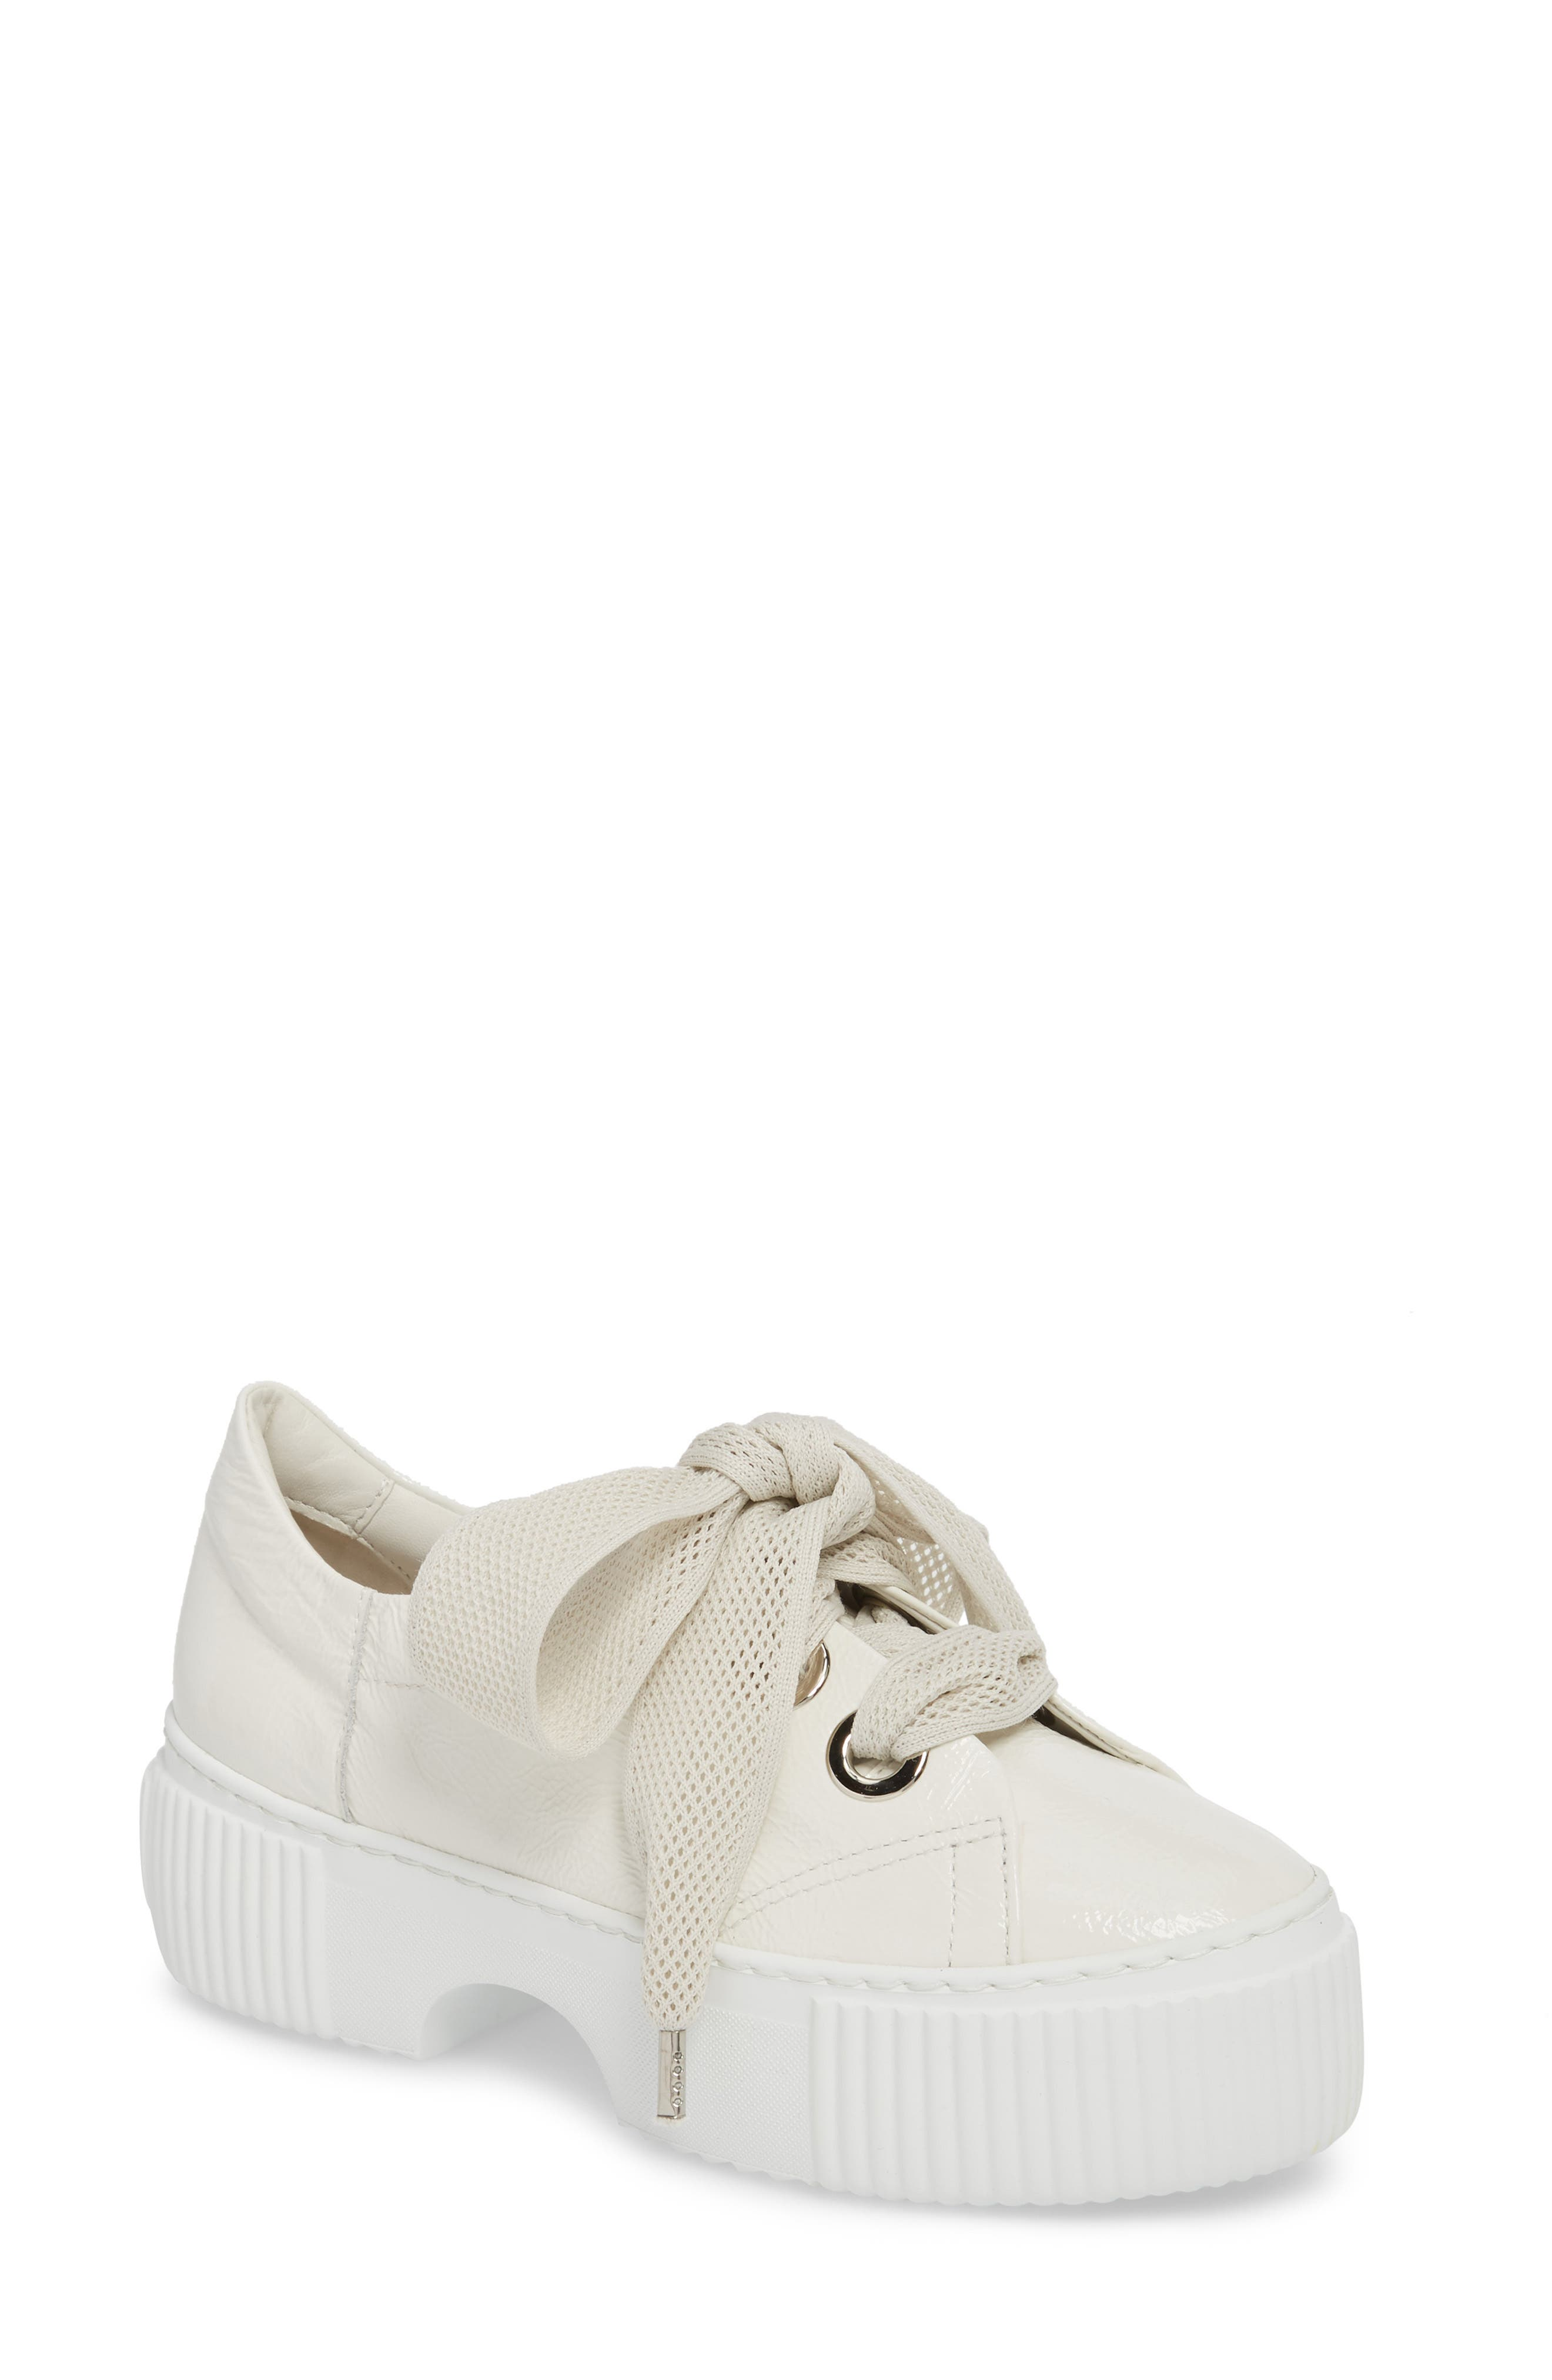 Platform Sneaker,                             Main thumbnail 1, color,                             WHITE GLAMMY LEATHER